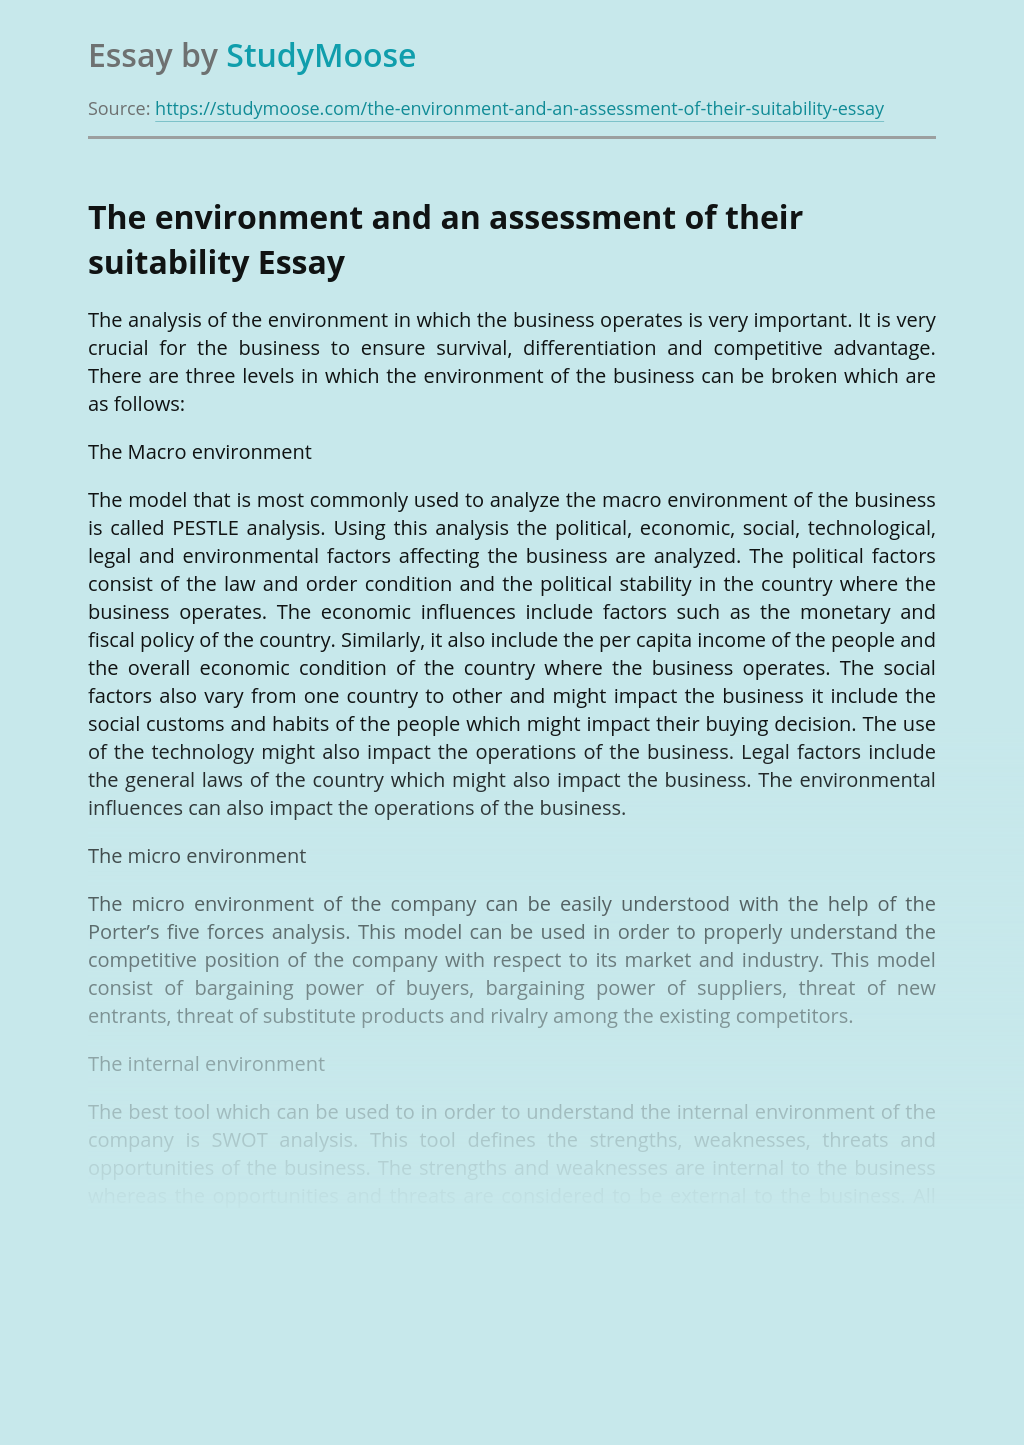 The environment and an assessment of their suitability